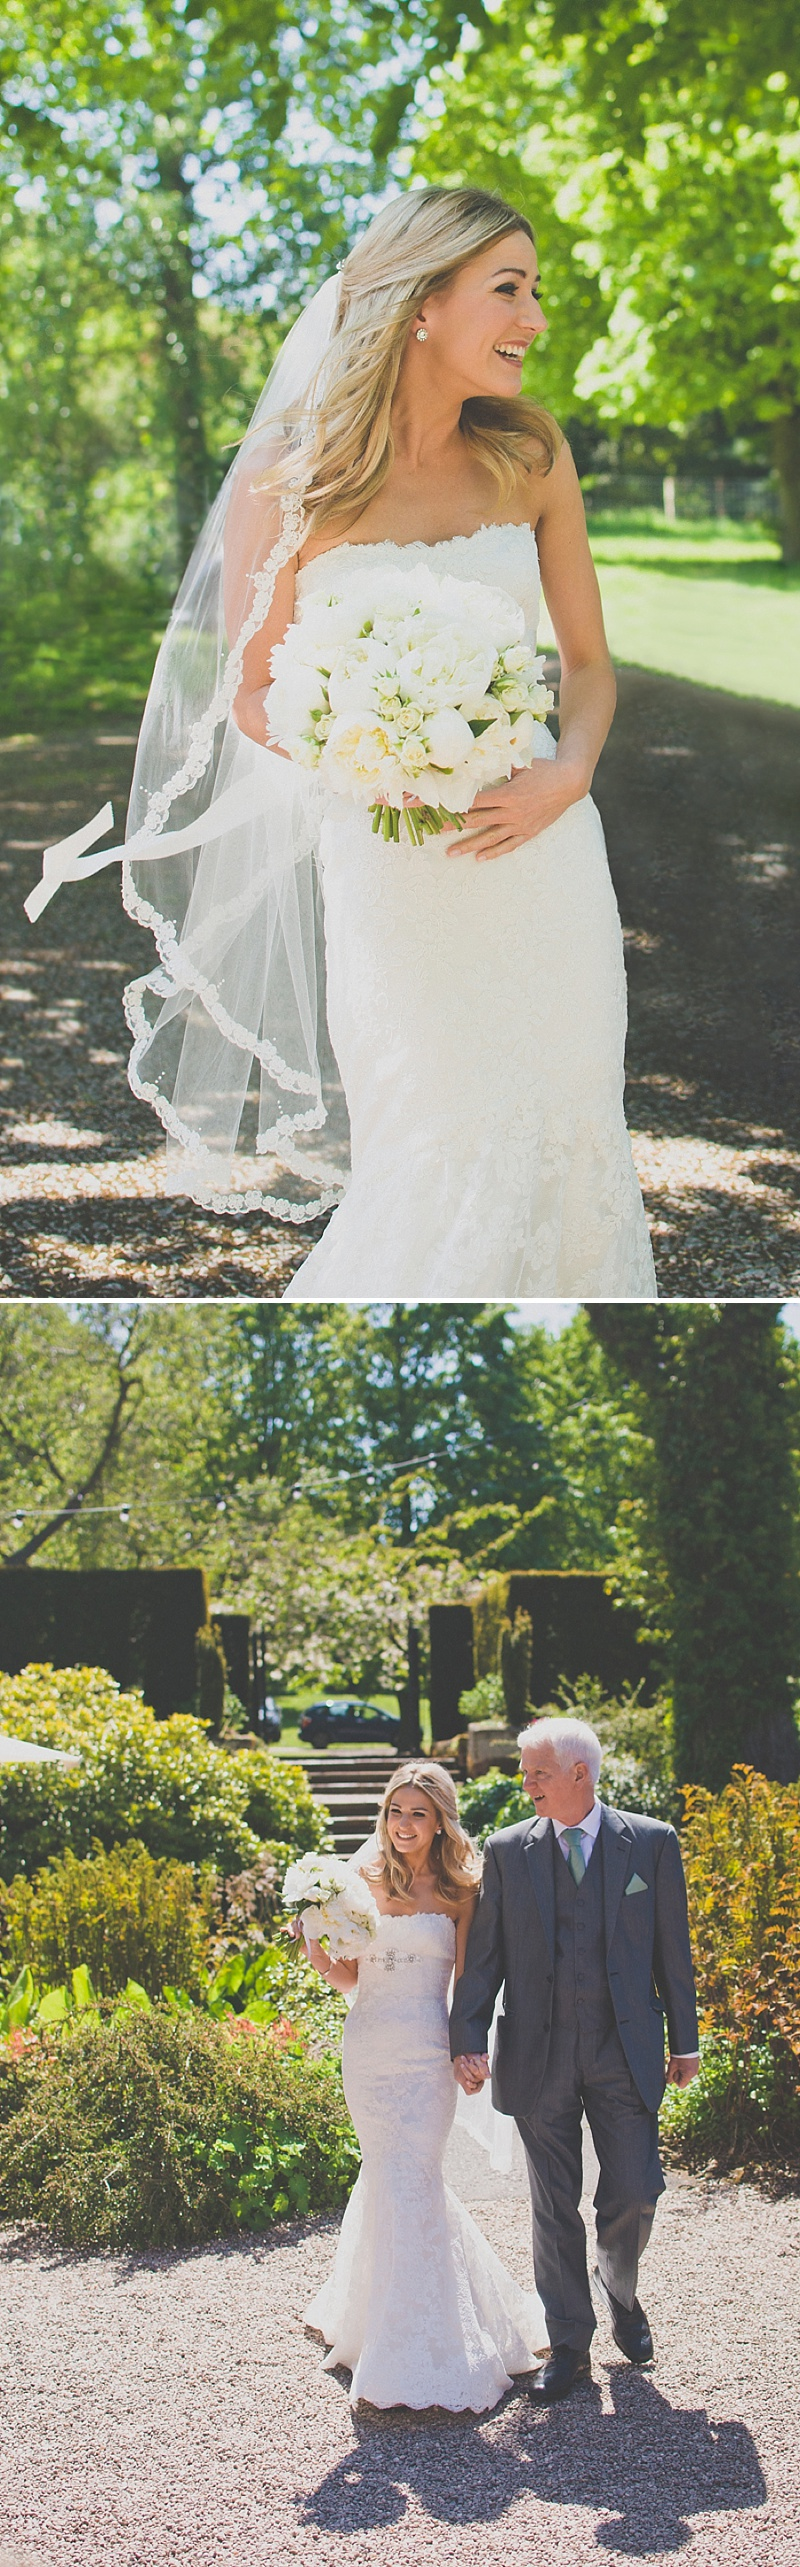 An Elegant White Themed Wedding At The Ness Botanic Gardens With Bride In Champagne From Blue By Enzoani With Aldo 'Corinne' Shoes Images By Rivington Photography_0020